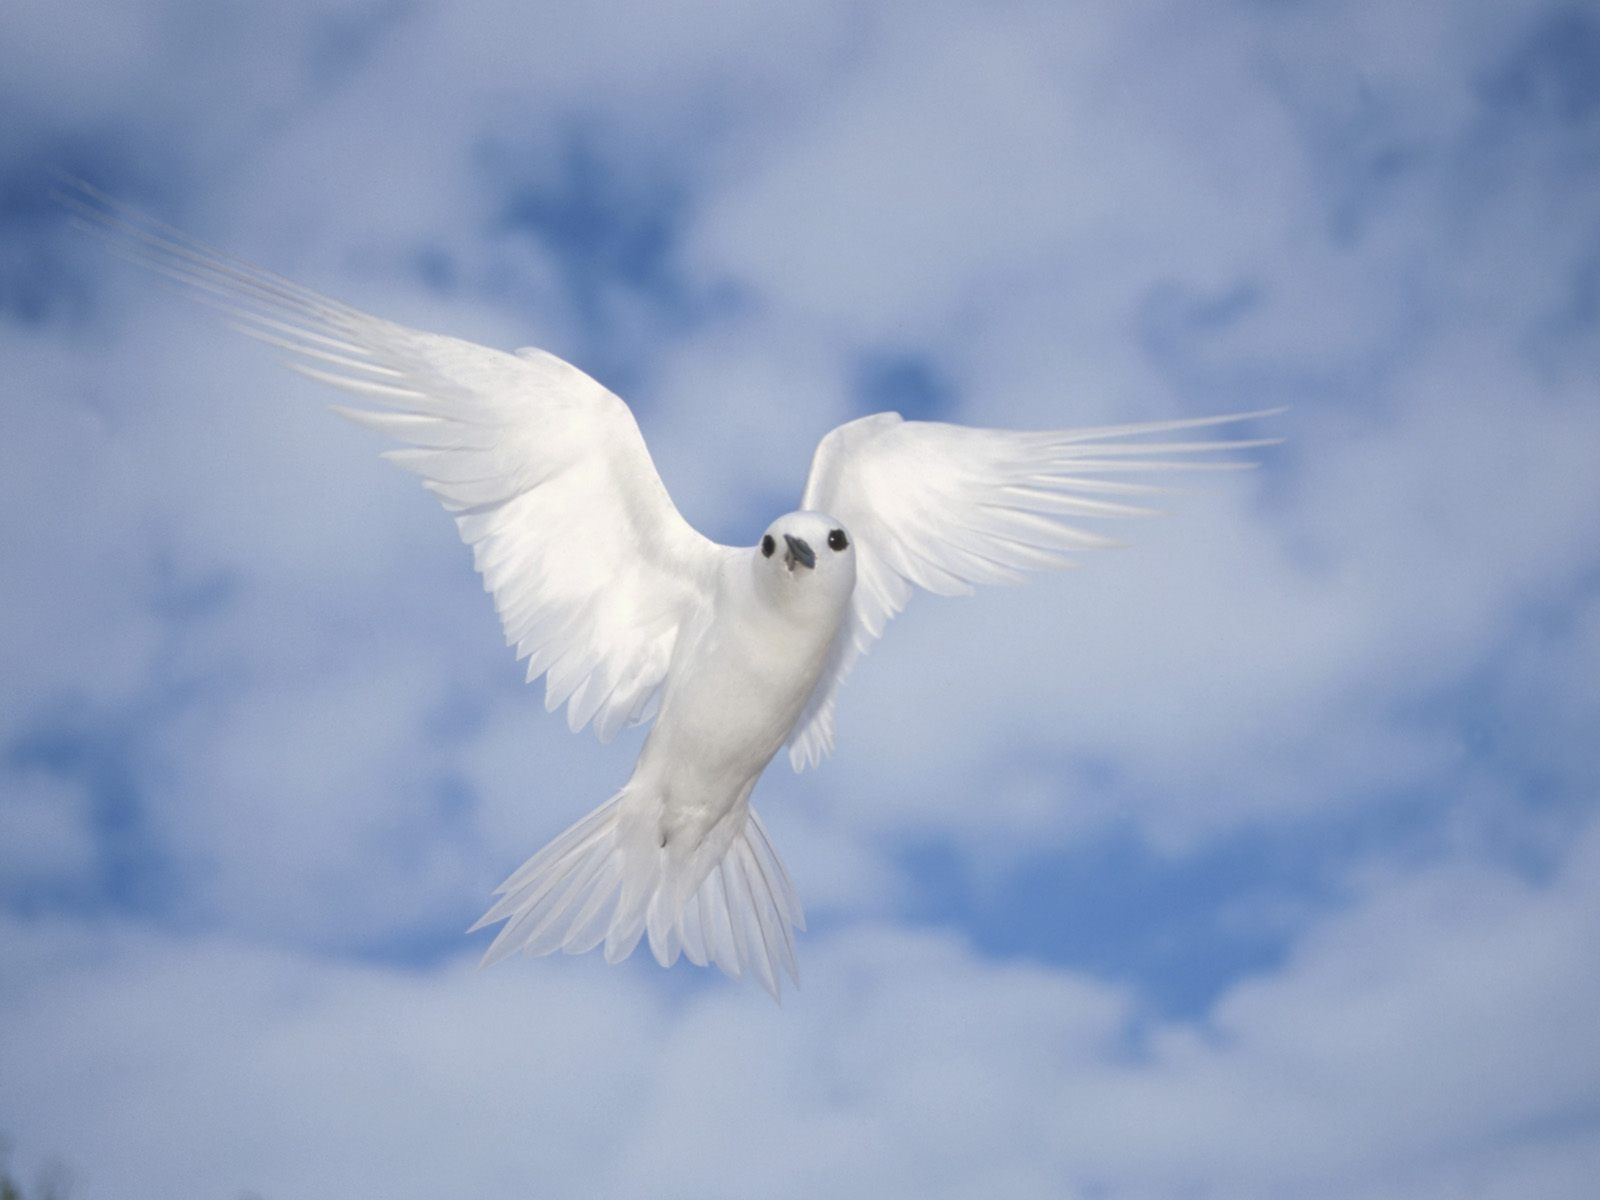 Peace White Dove Wallpapers 1600x1200 102564